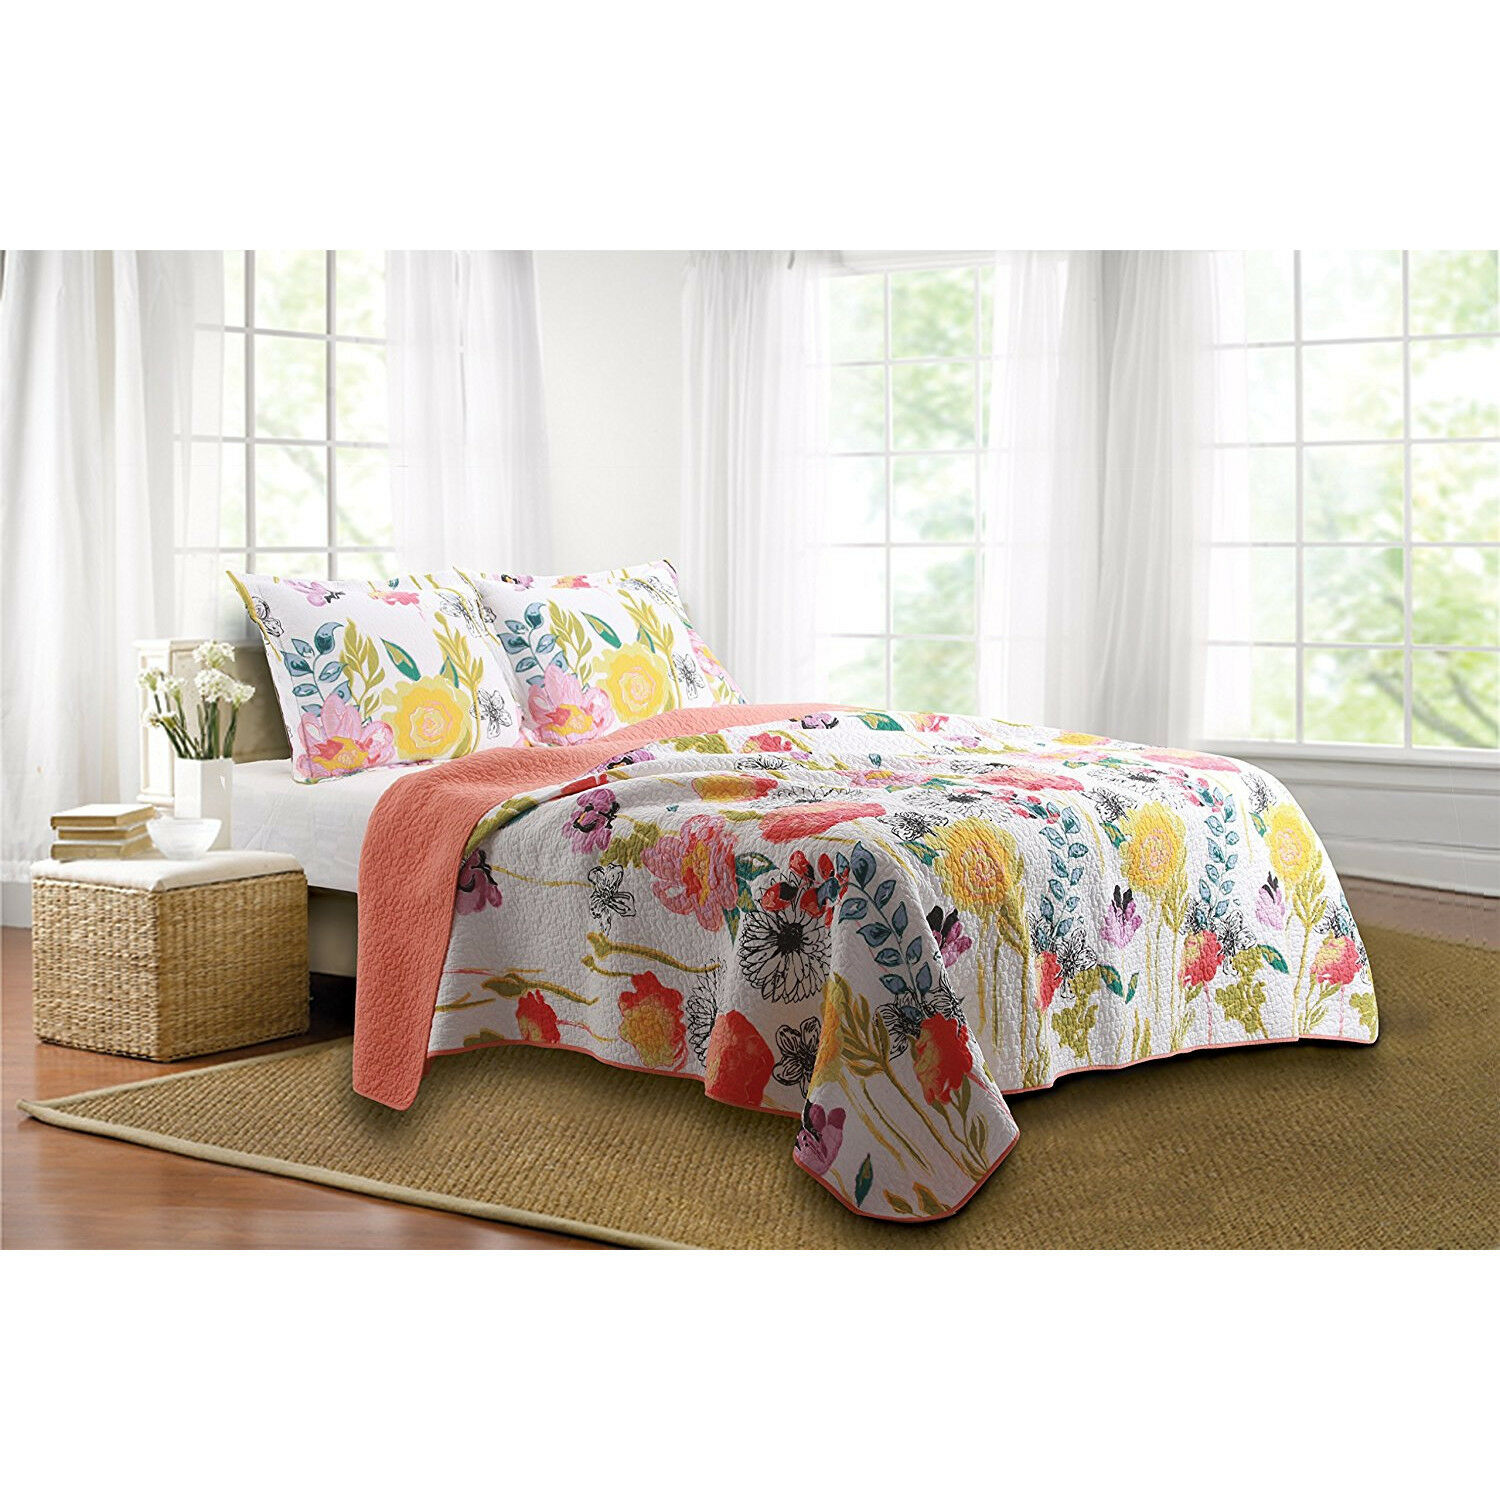 Full Queen Floral Quilt Set 3pc Bed Room Decor Sham Mattress Reversible Cover